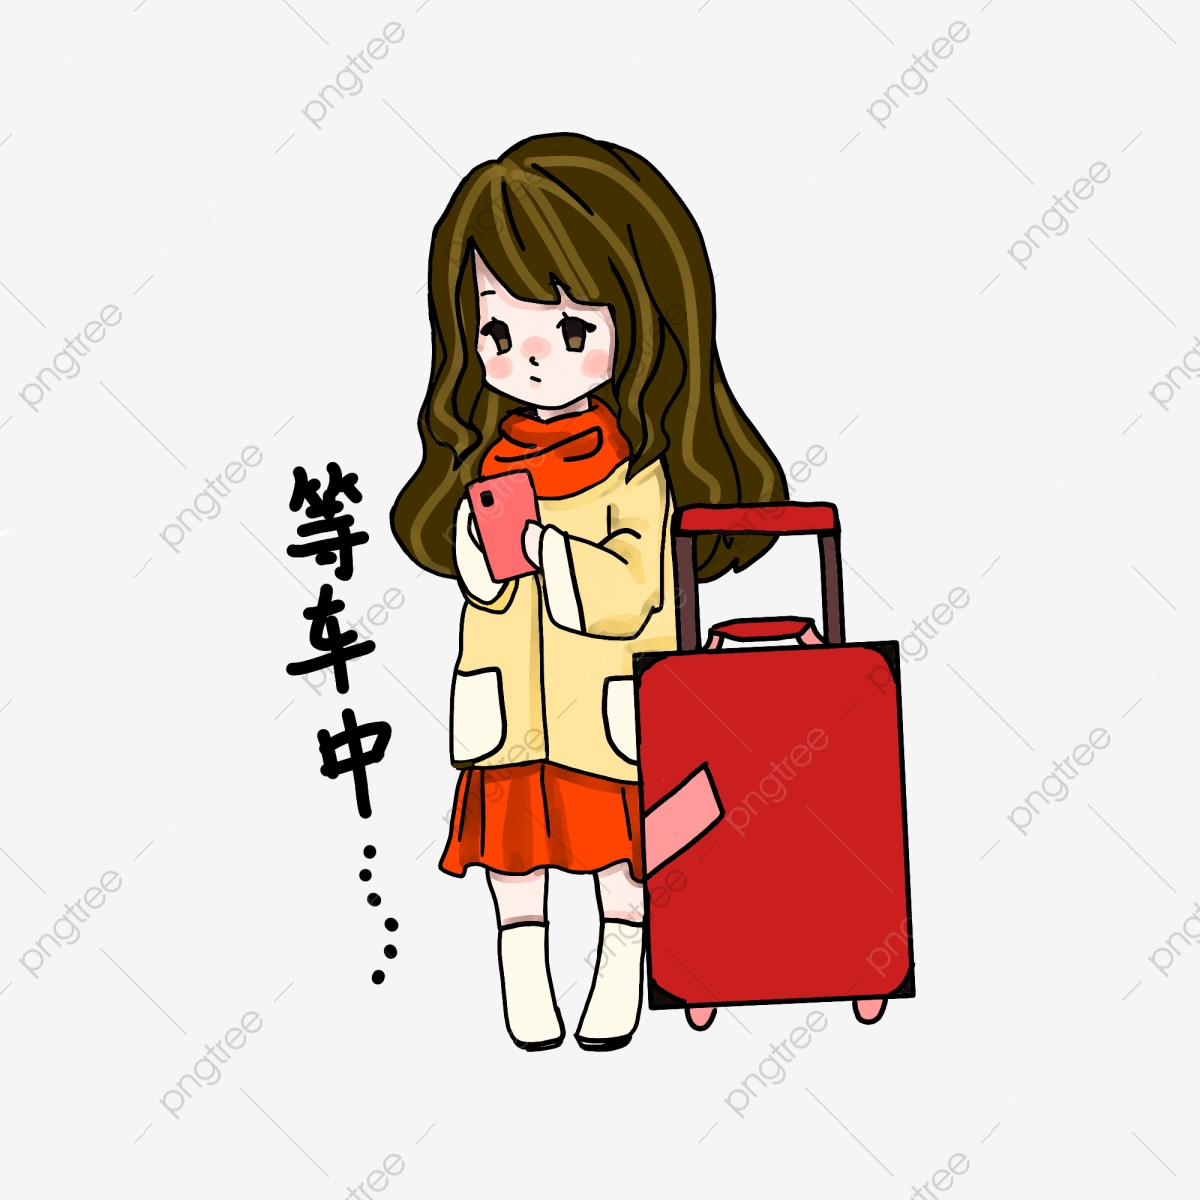 Girl playing with mobile. Bored clipart home clipart